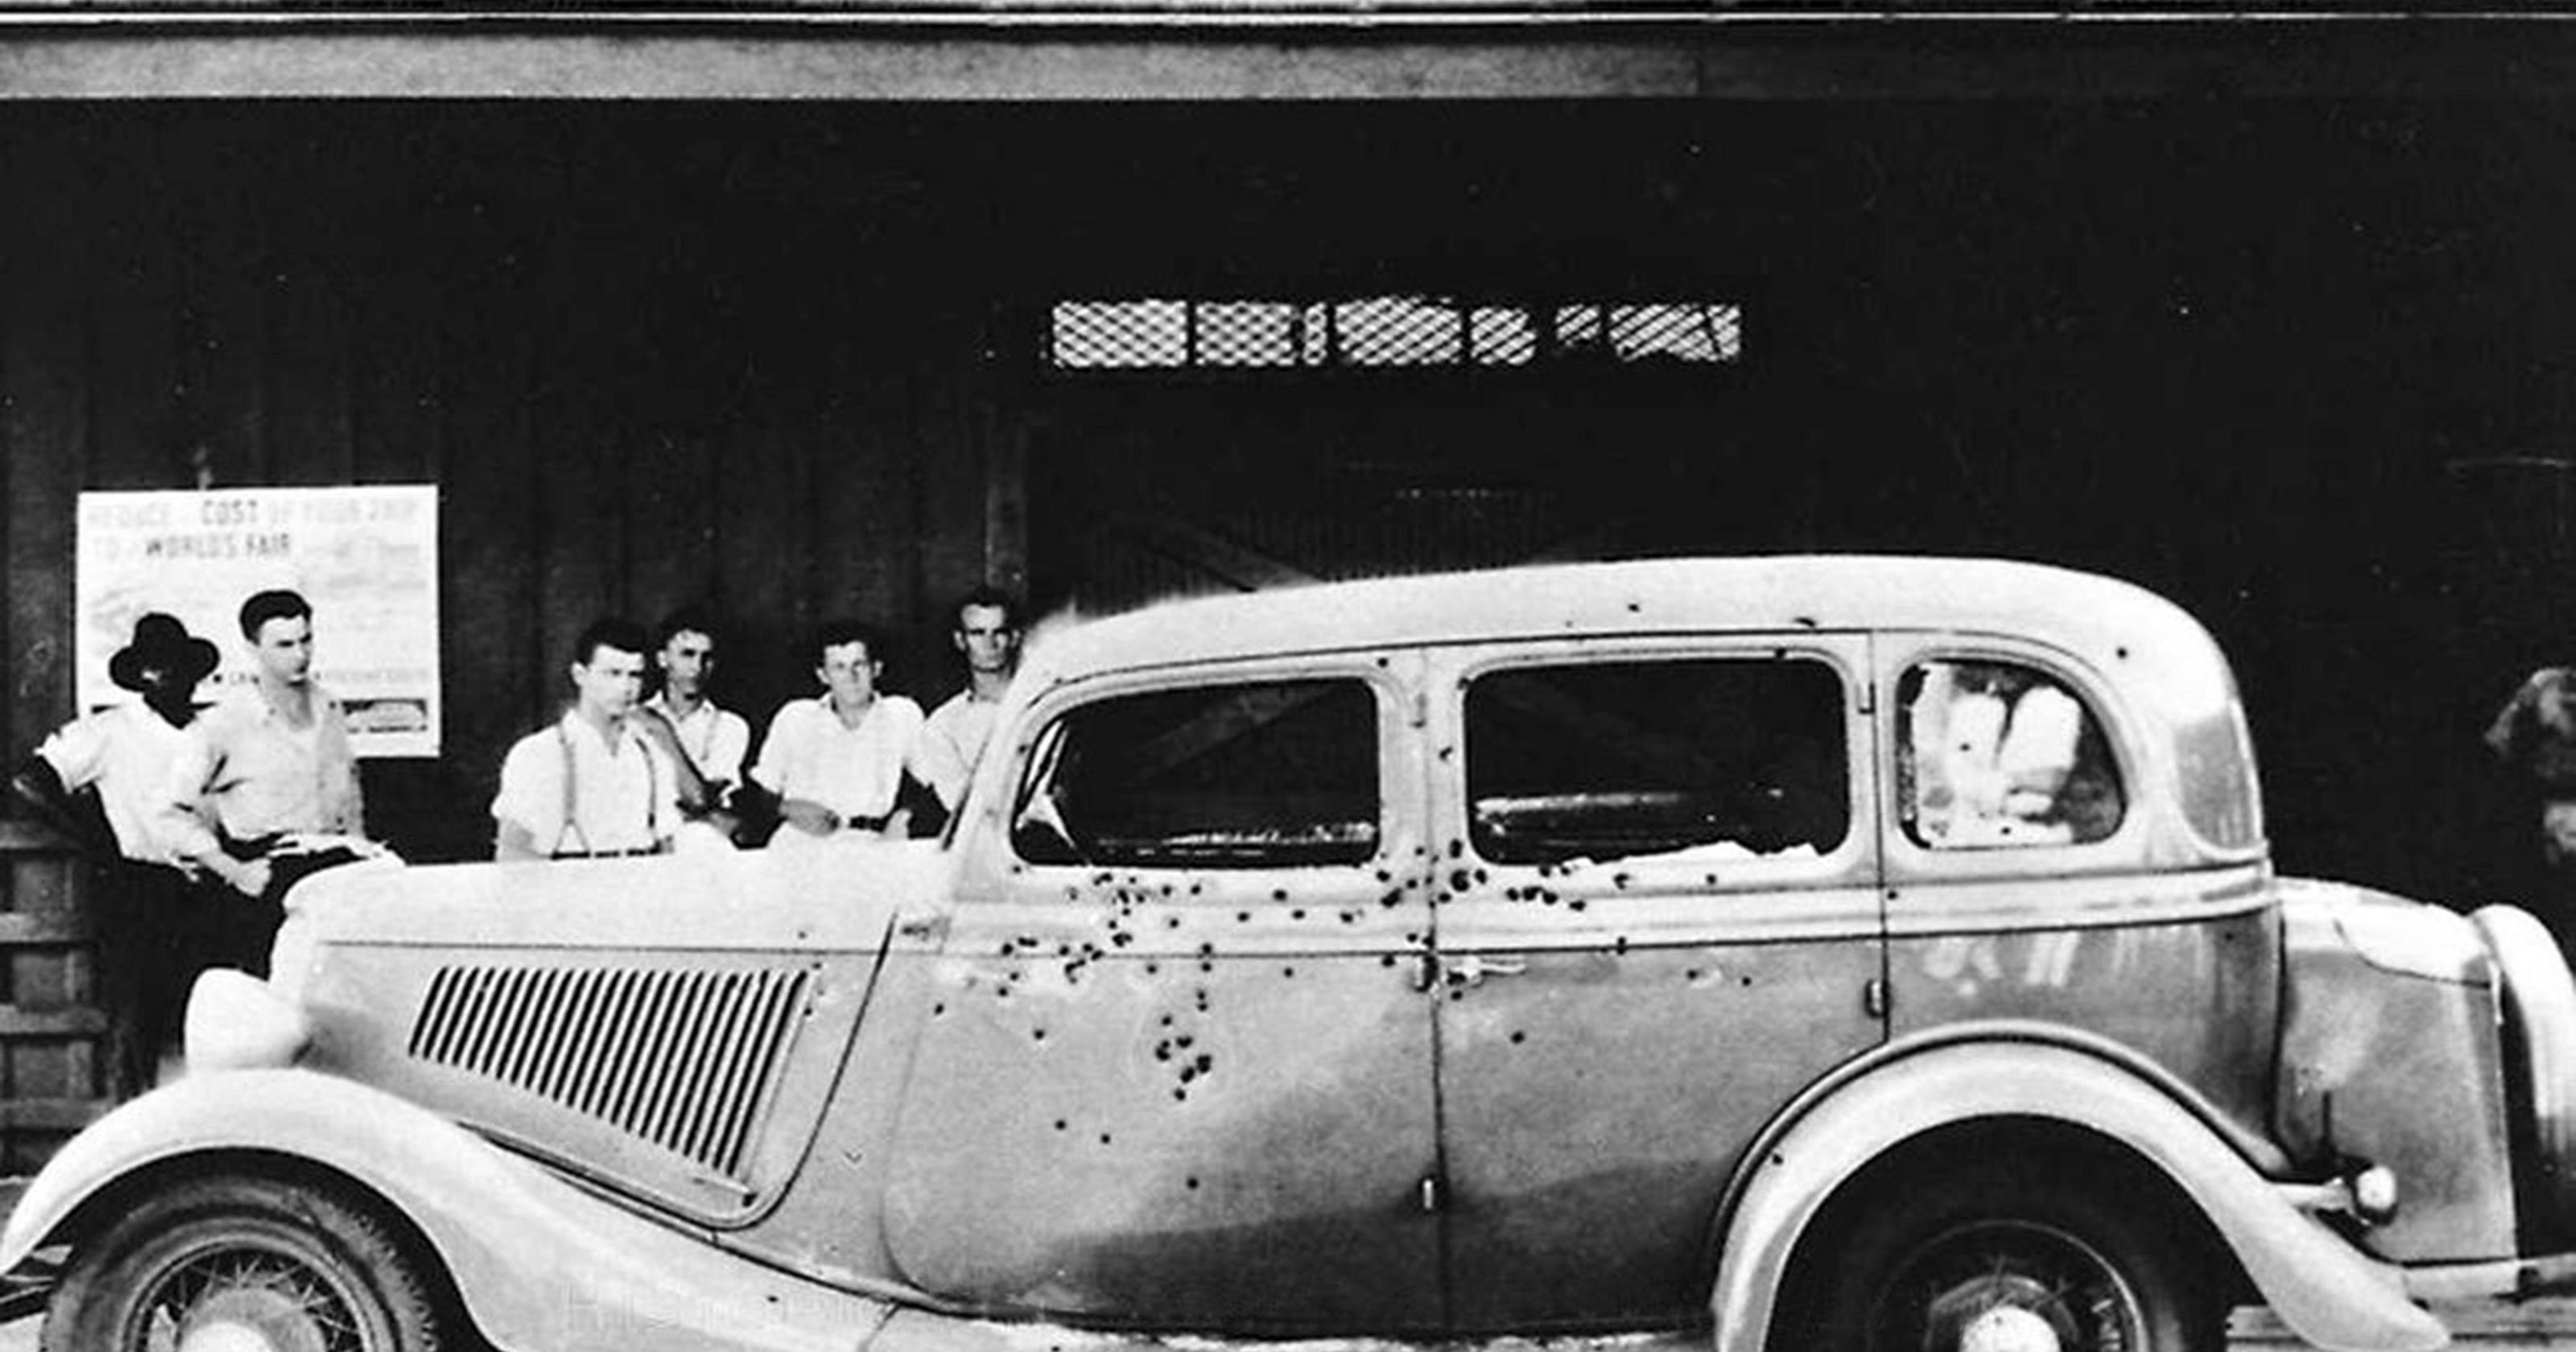 Bonnie And Clyde Car Location: When Bonnie And Clyde's Bullet-riddled Car Came To Town